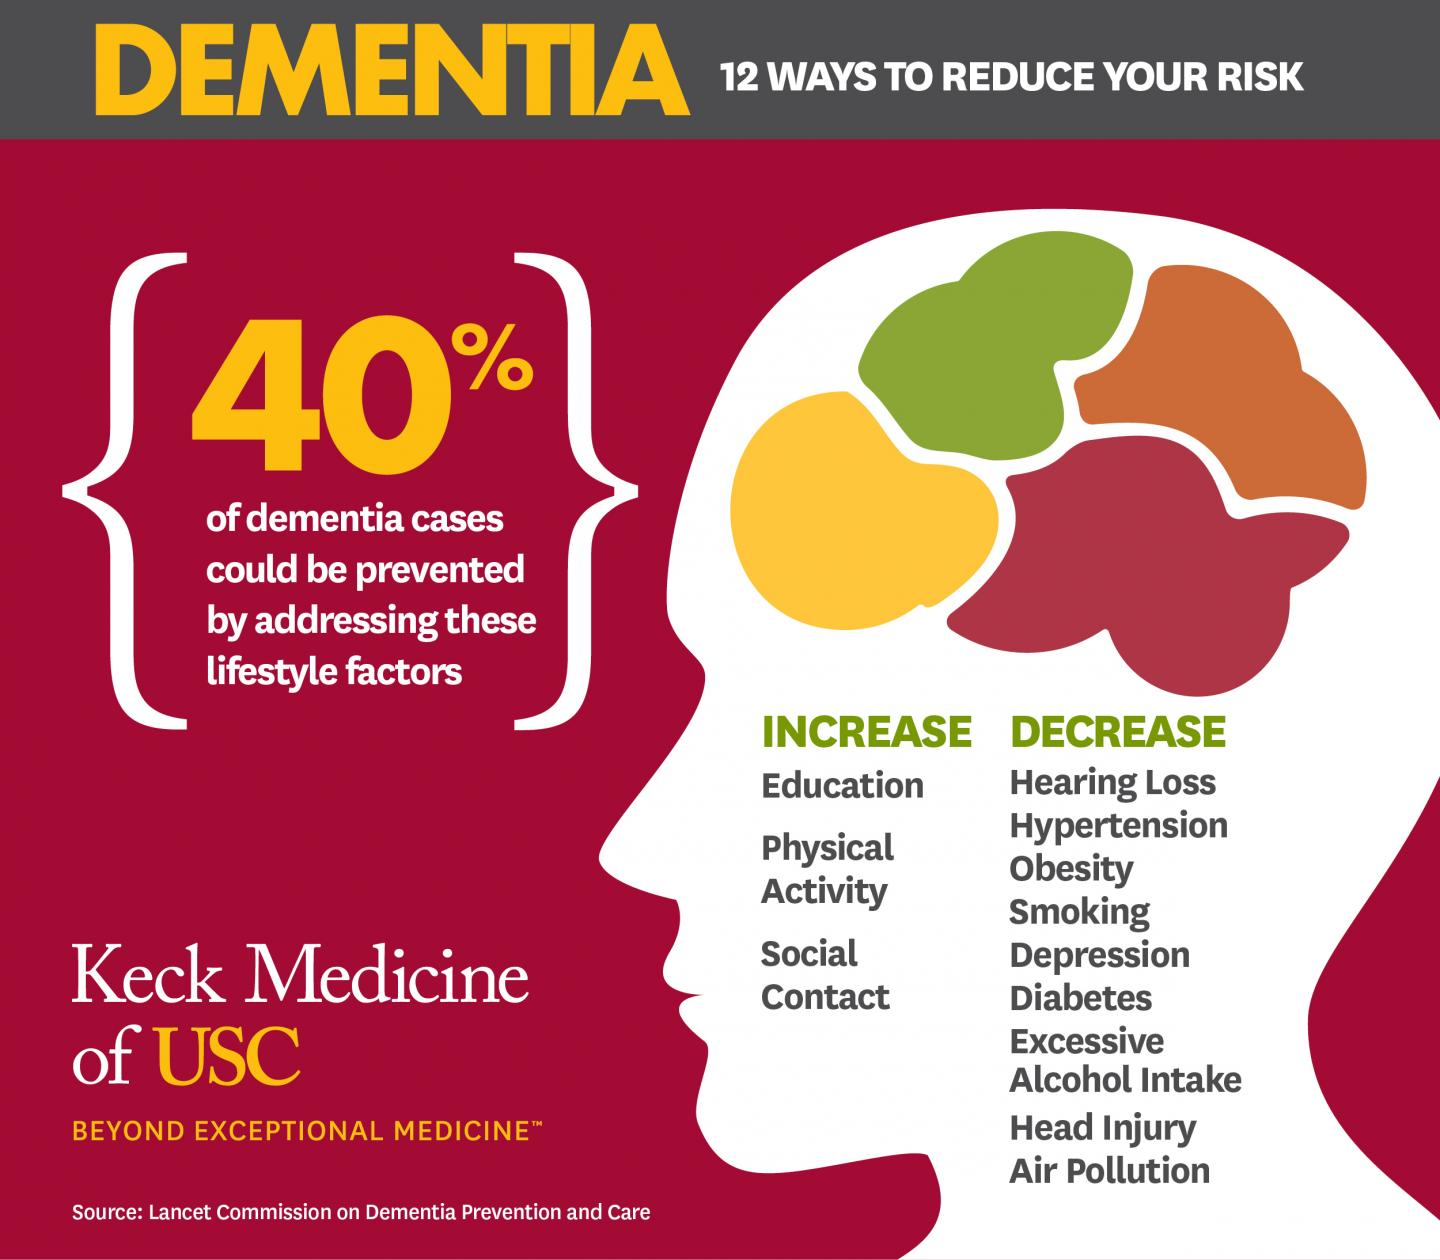 Dementia Risk Reduced by Lifestyle factors - USC Keck Medicine Infographic